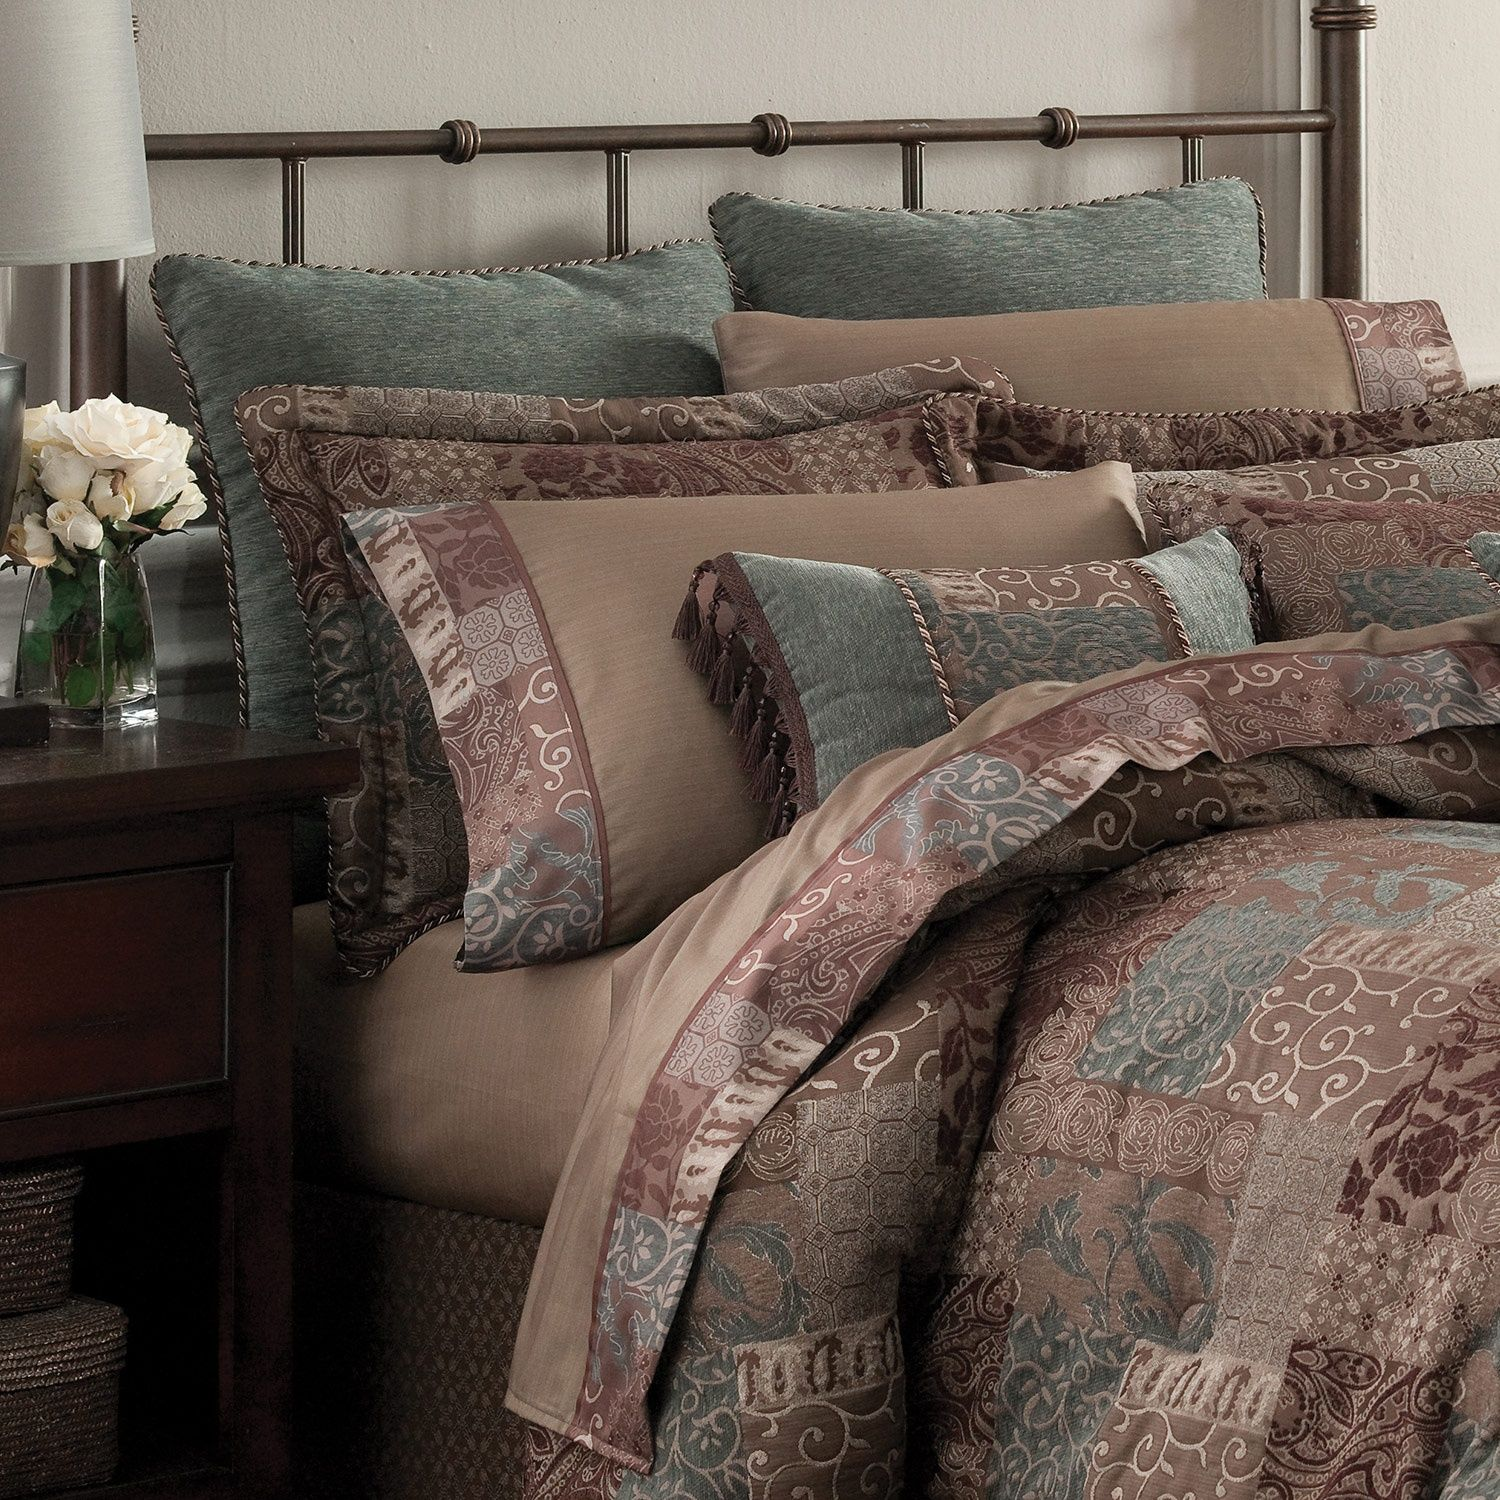 Croscill Galleria Chocolate Bedding Collection Bedding Collections